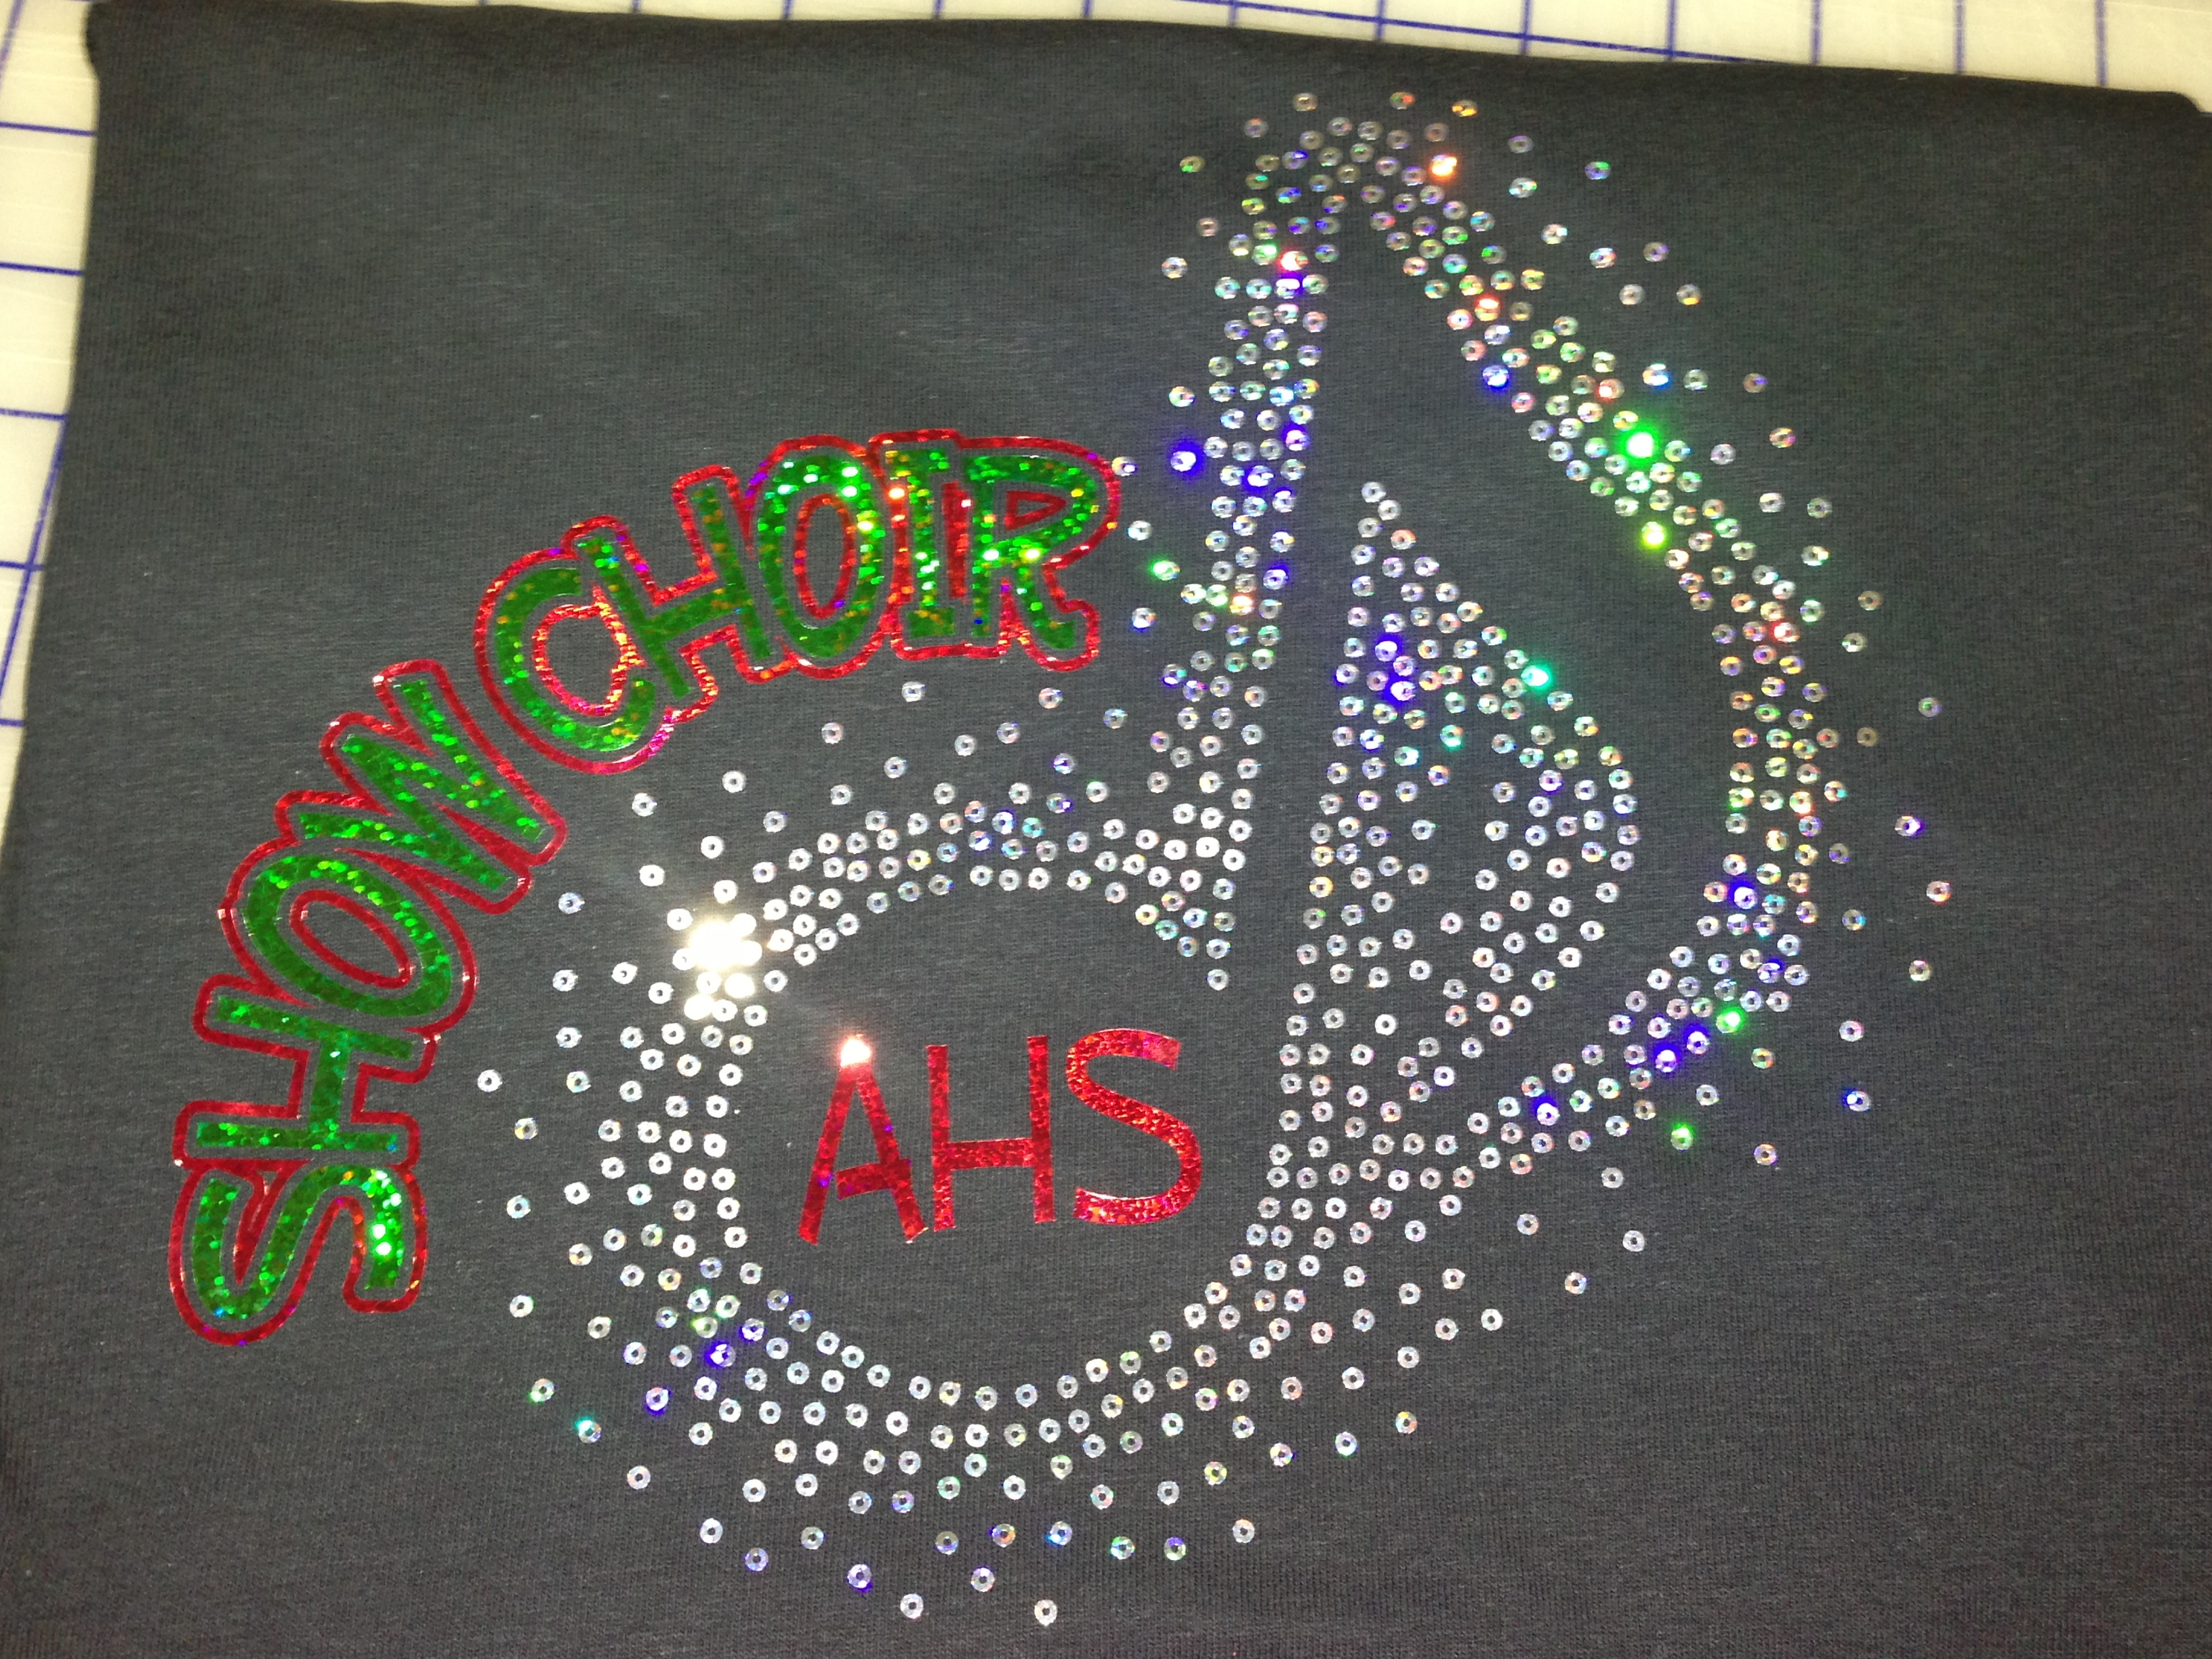 Serenade clipart show choir Show Choral sequin / images